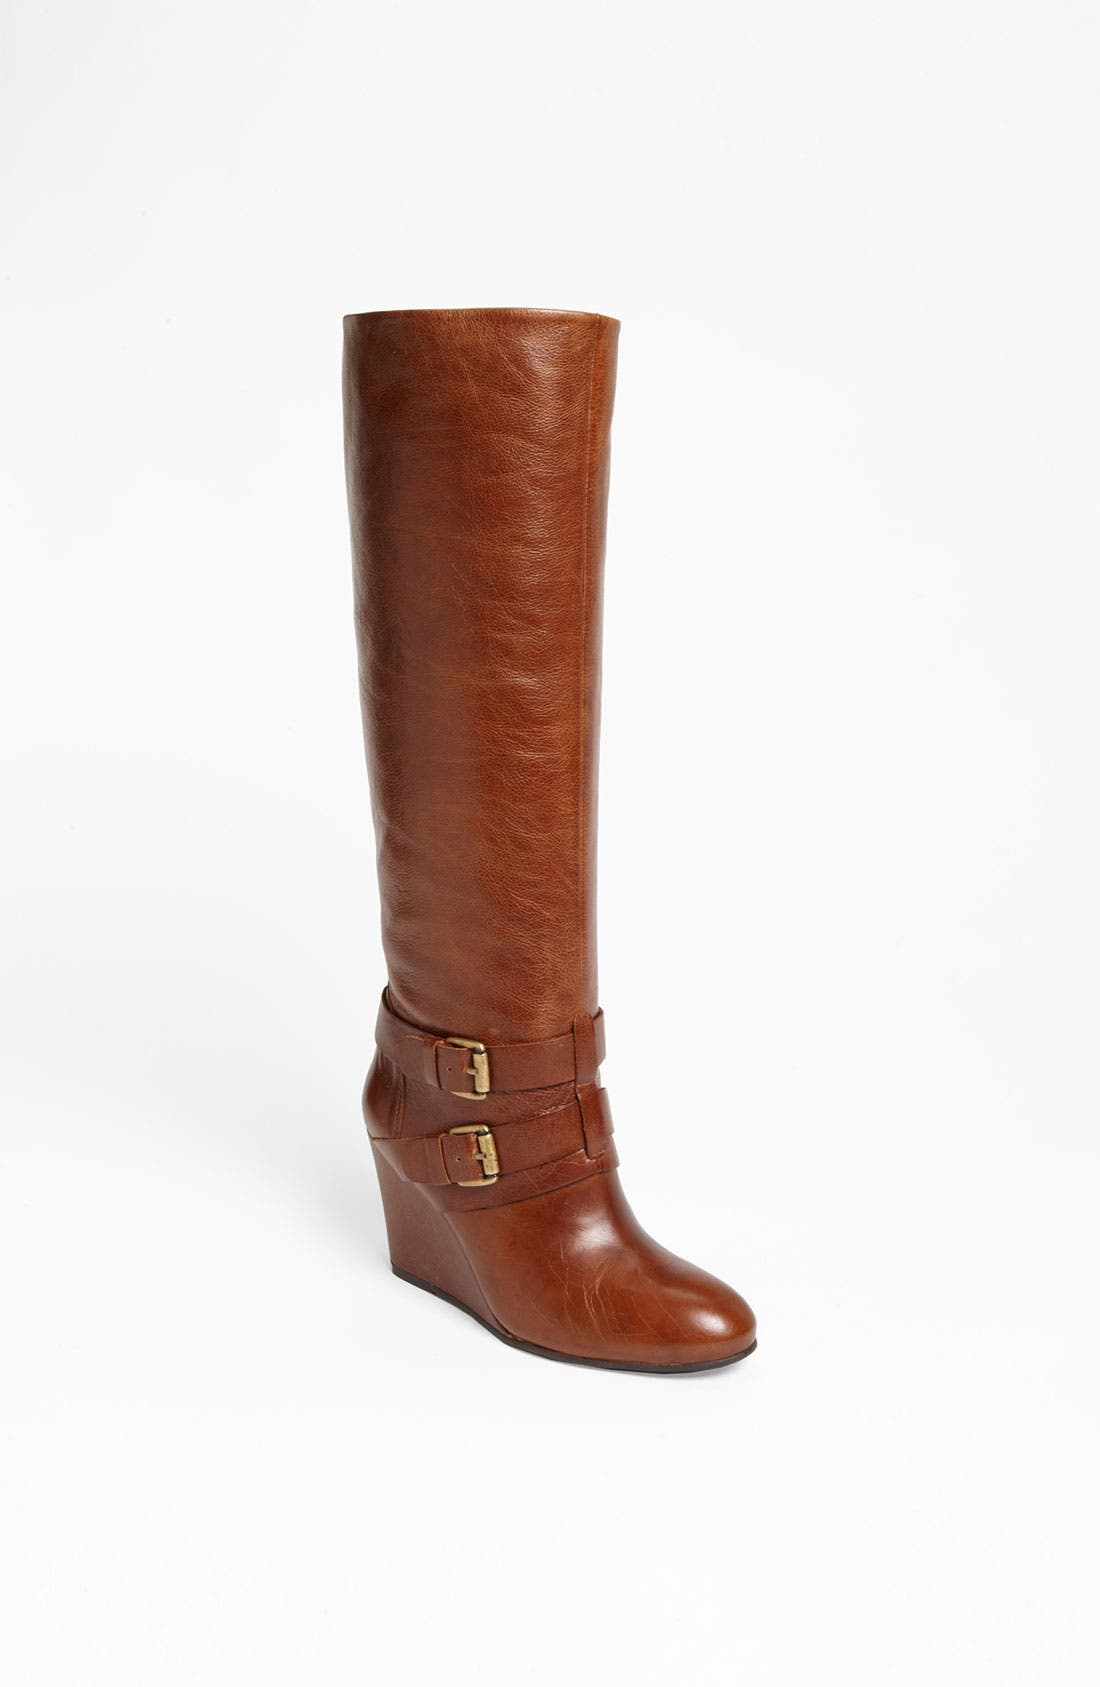 Main Image - Steven by Steve Madden 'Morgen' Boot